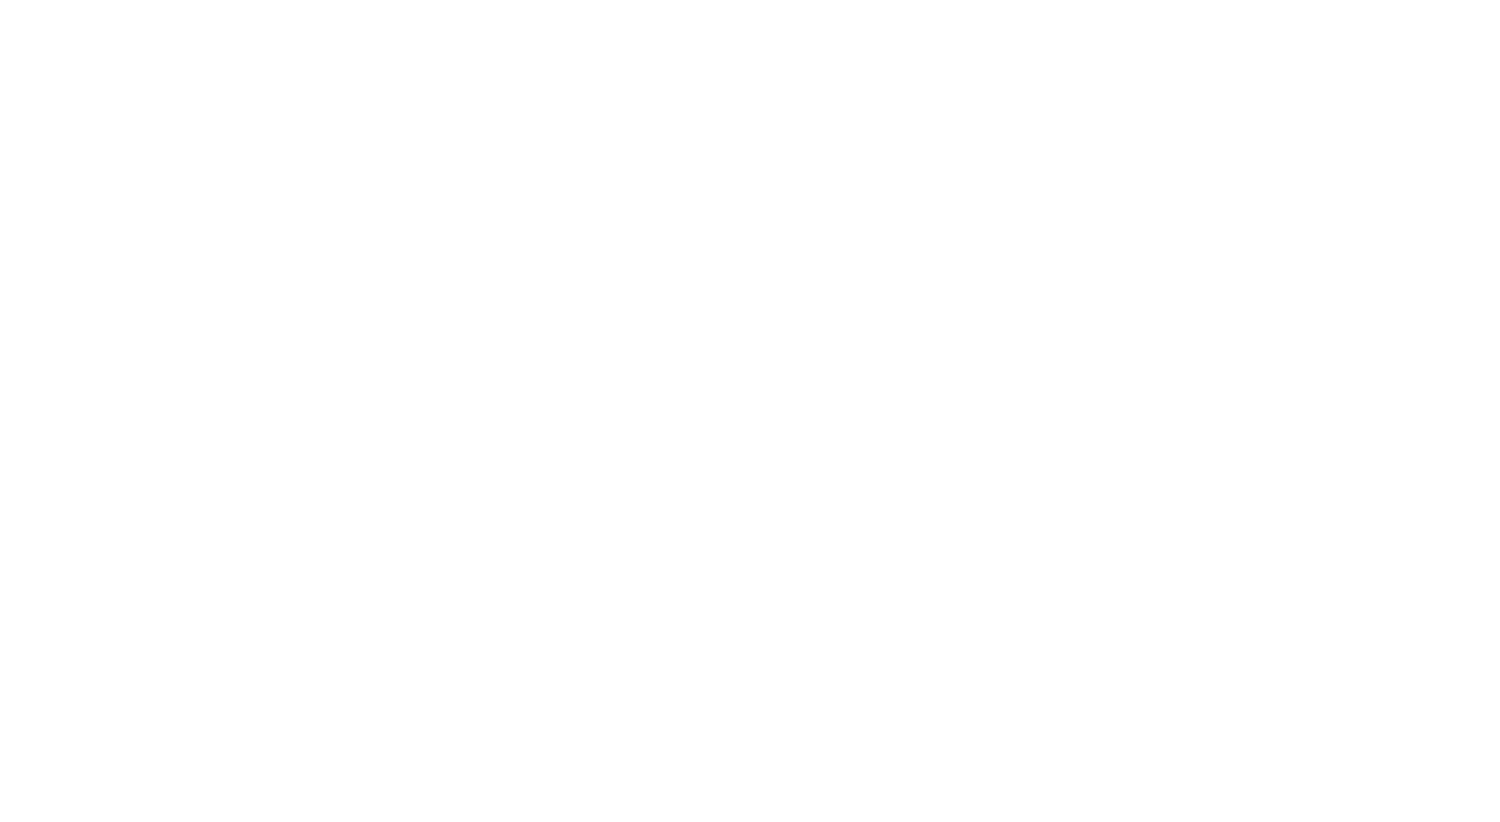 AJ Puckett Photography